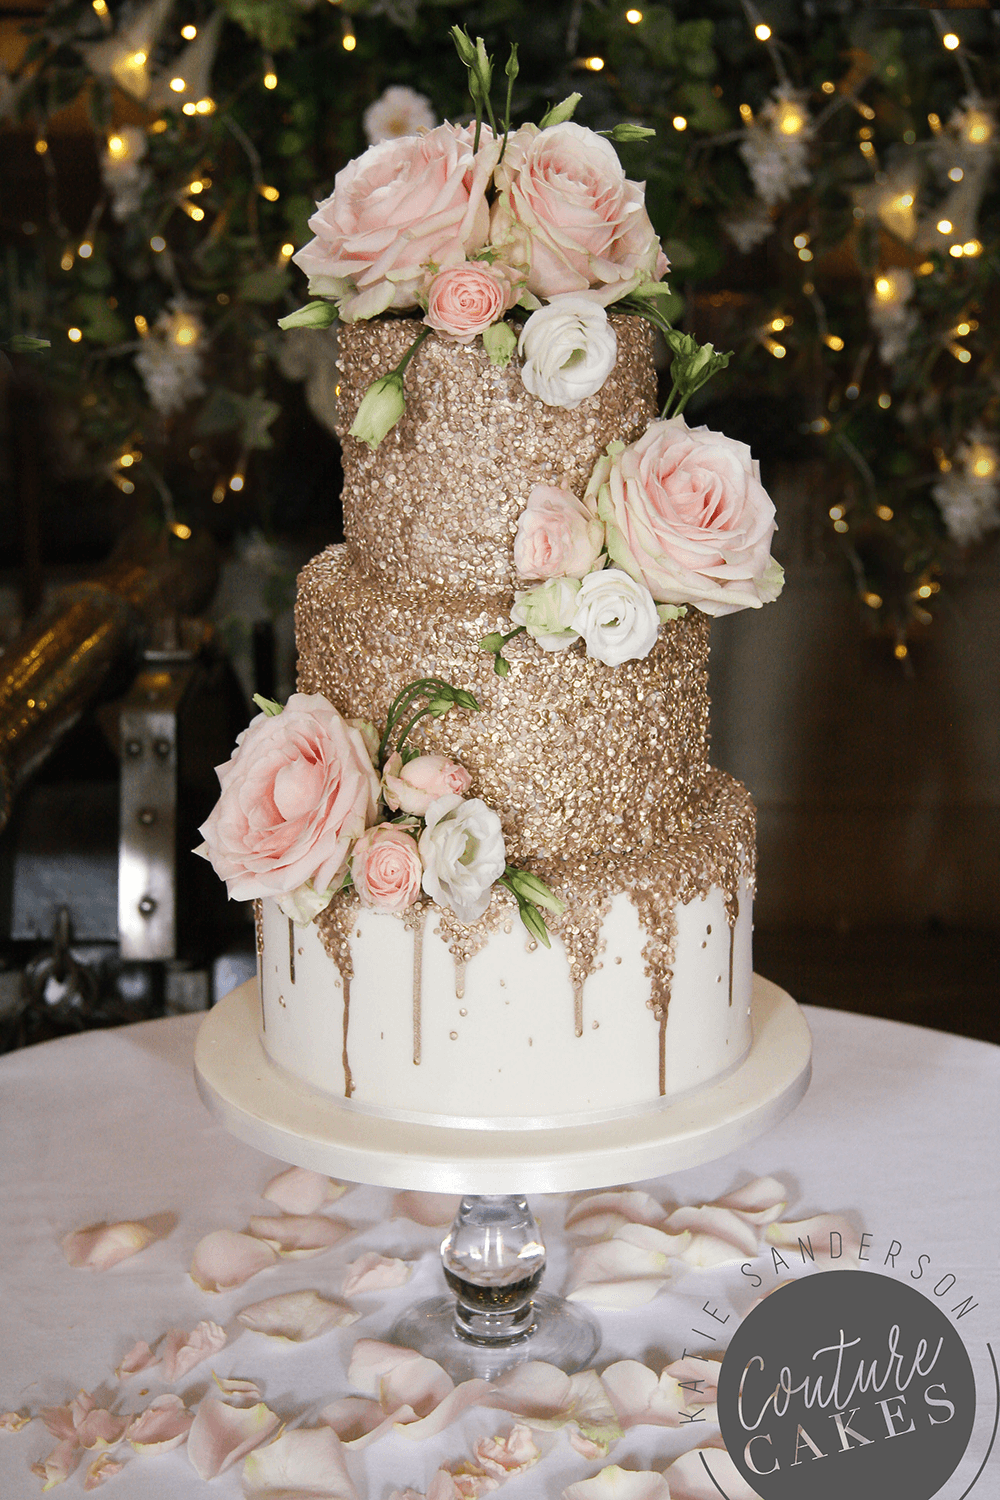 3 Tier Wedding Cake.Tiered Wedding Cakes For Stamford Lincolnshire